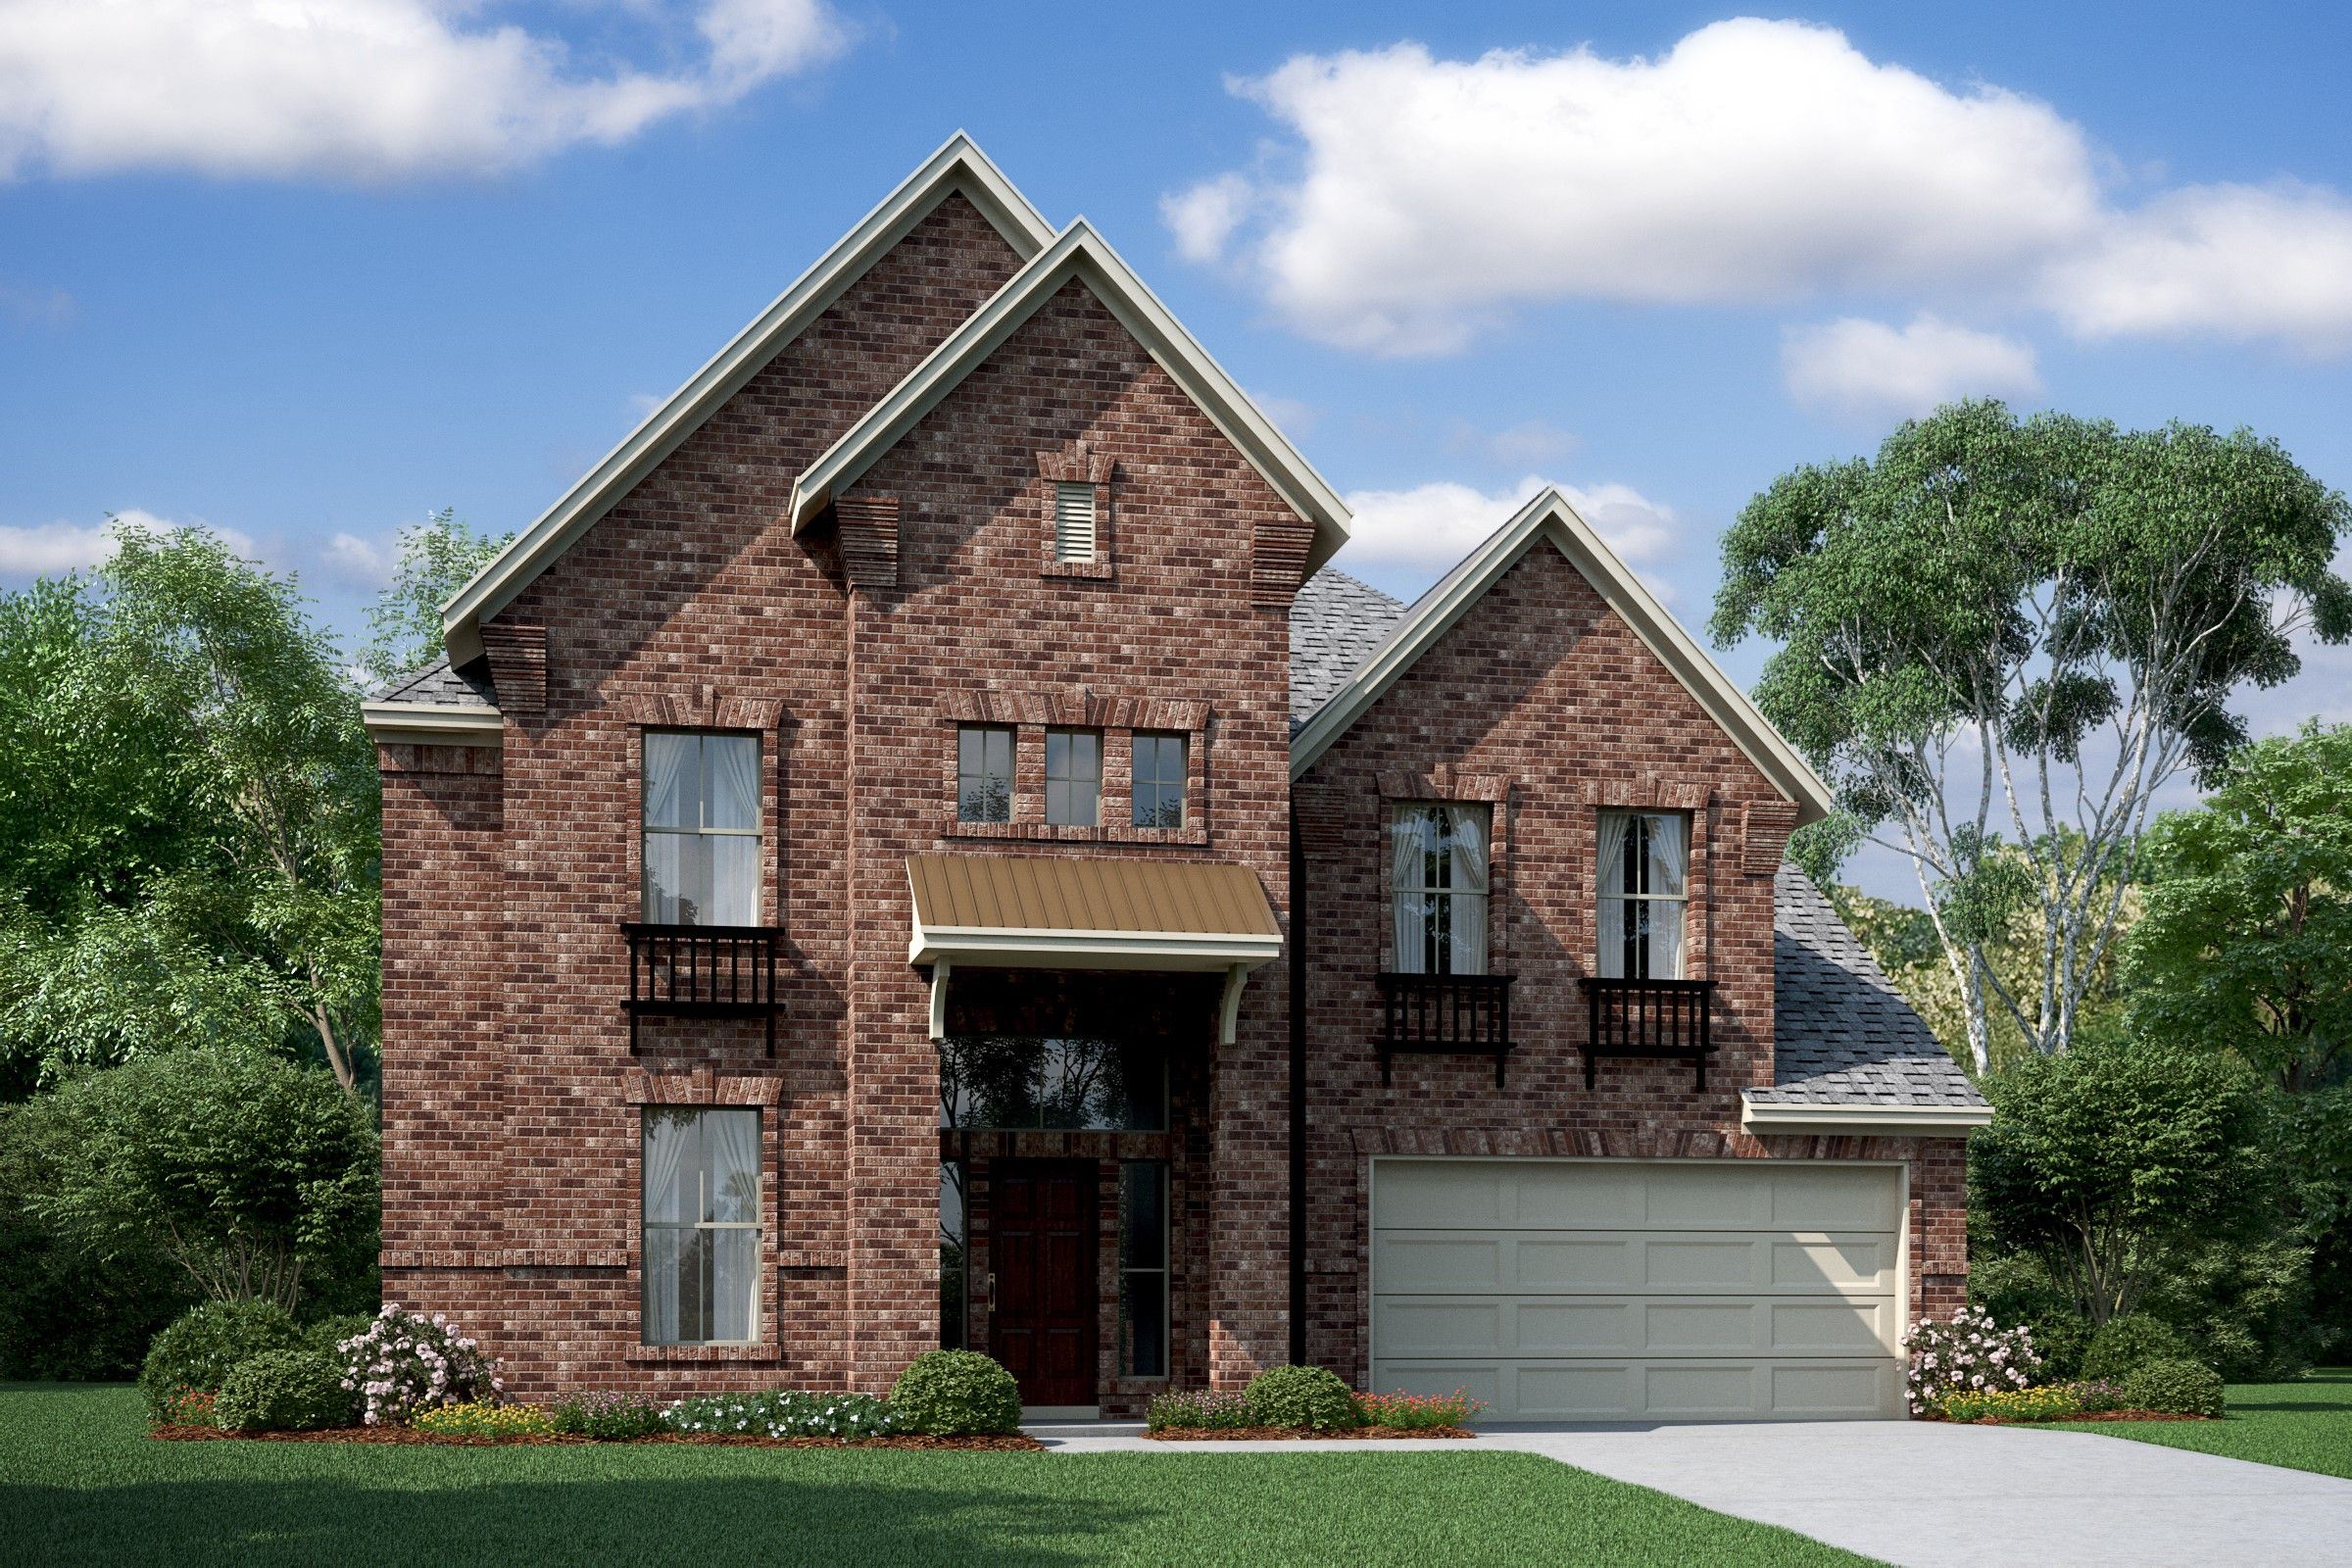 Single Family for Sale at Bayou Lakes - Dylan 1804 Cranston Grove Drive Dickinson, Texas 77539 United States